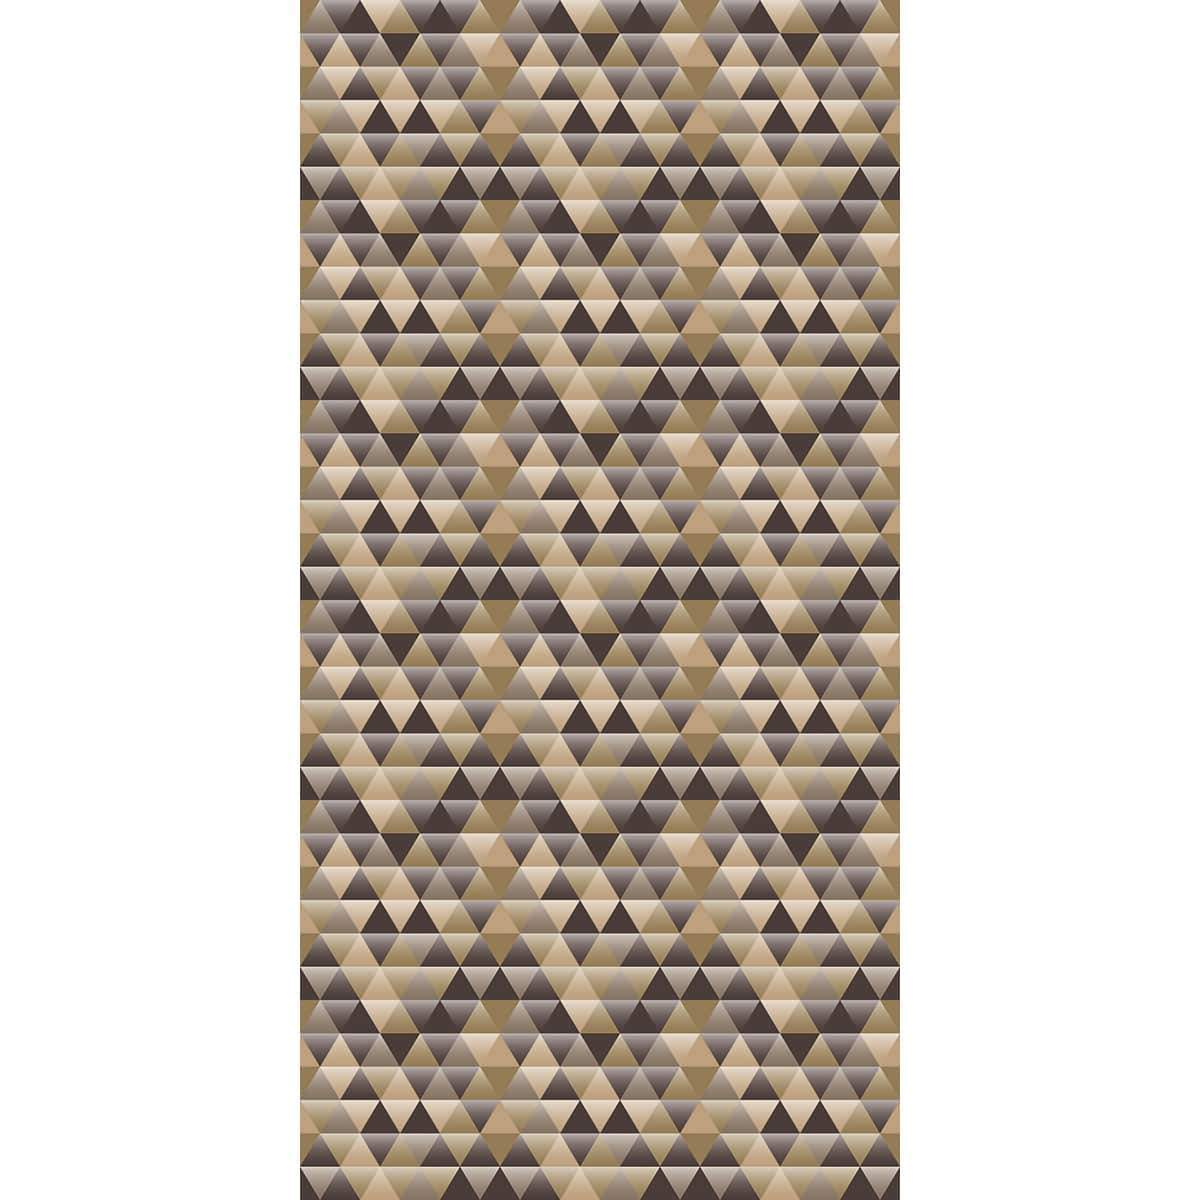 Wall Acoustics Bronze Muffle Patterns - Triangle